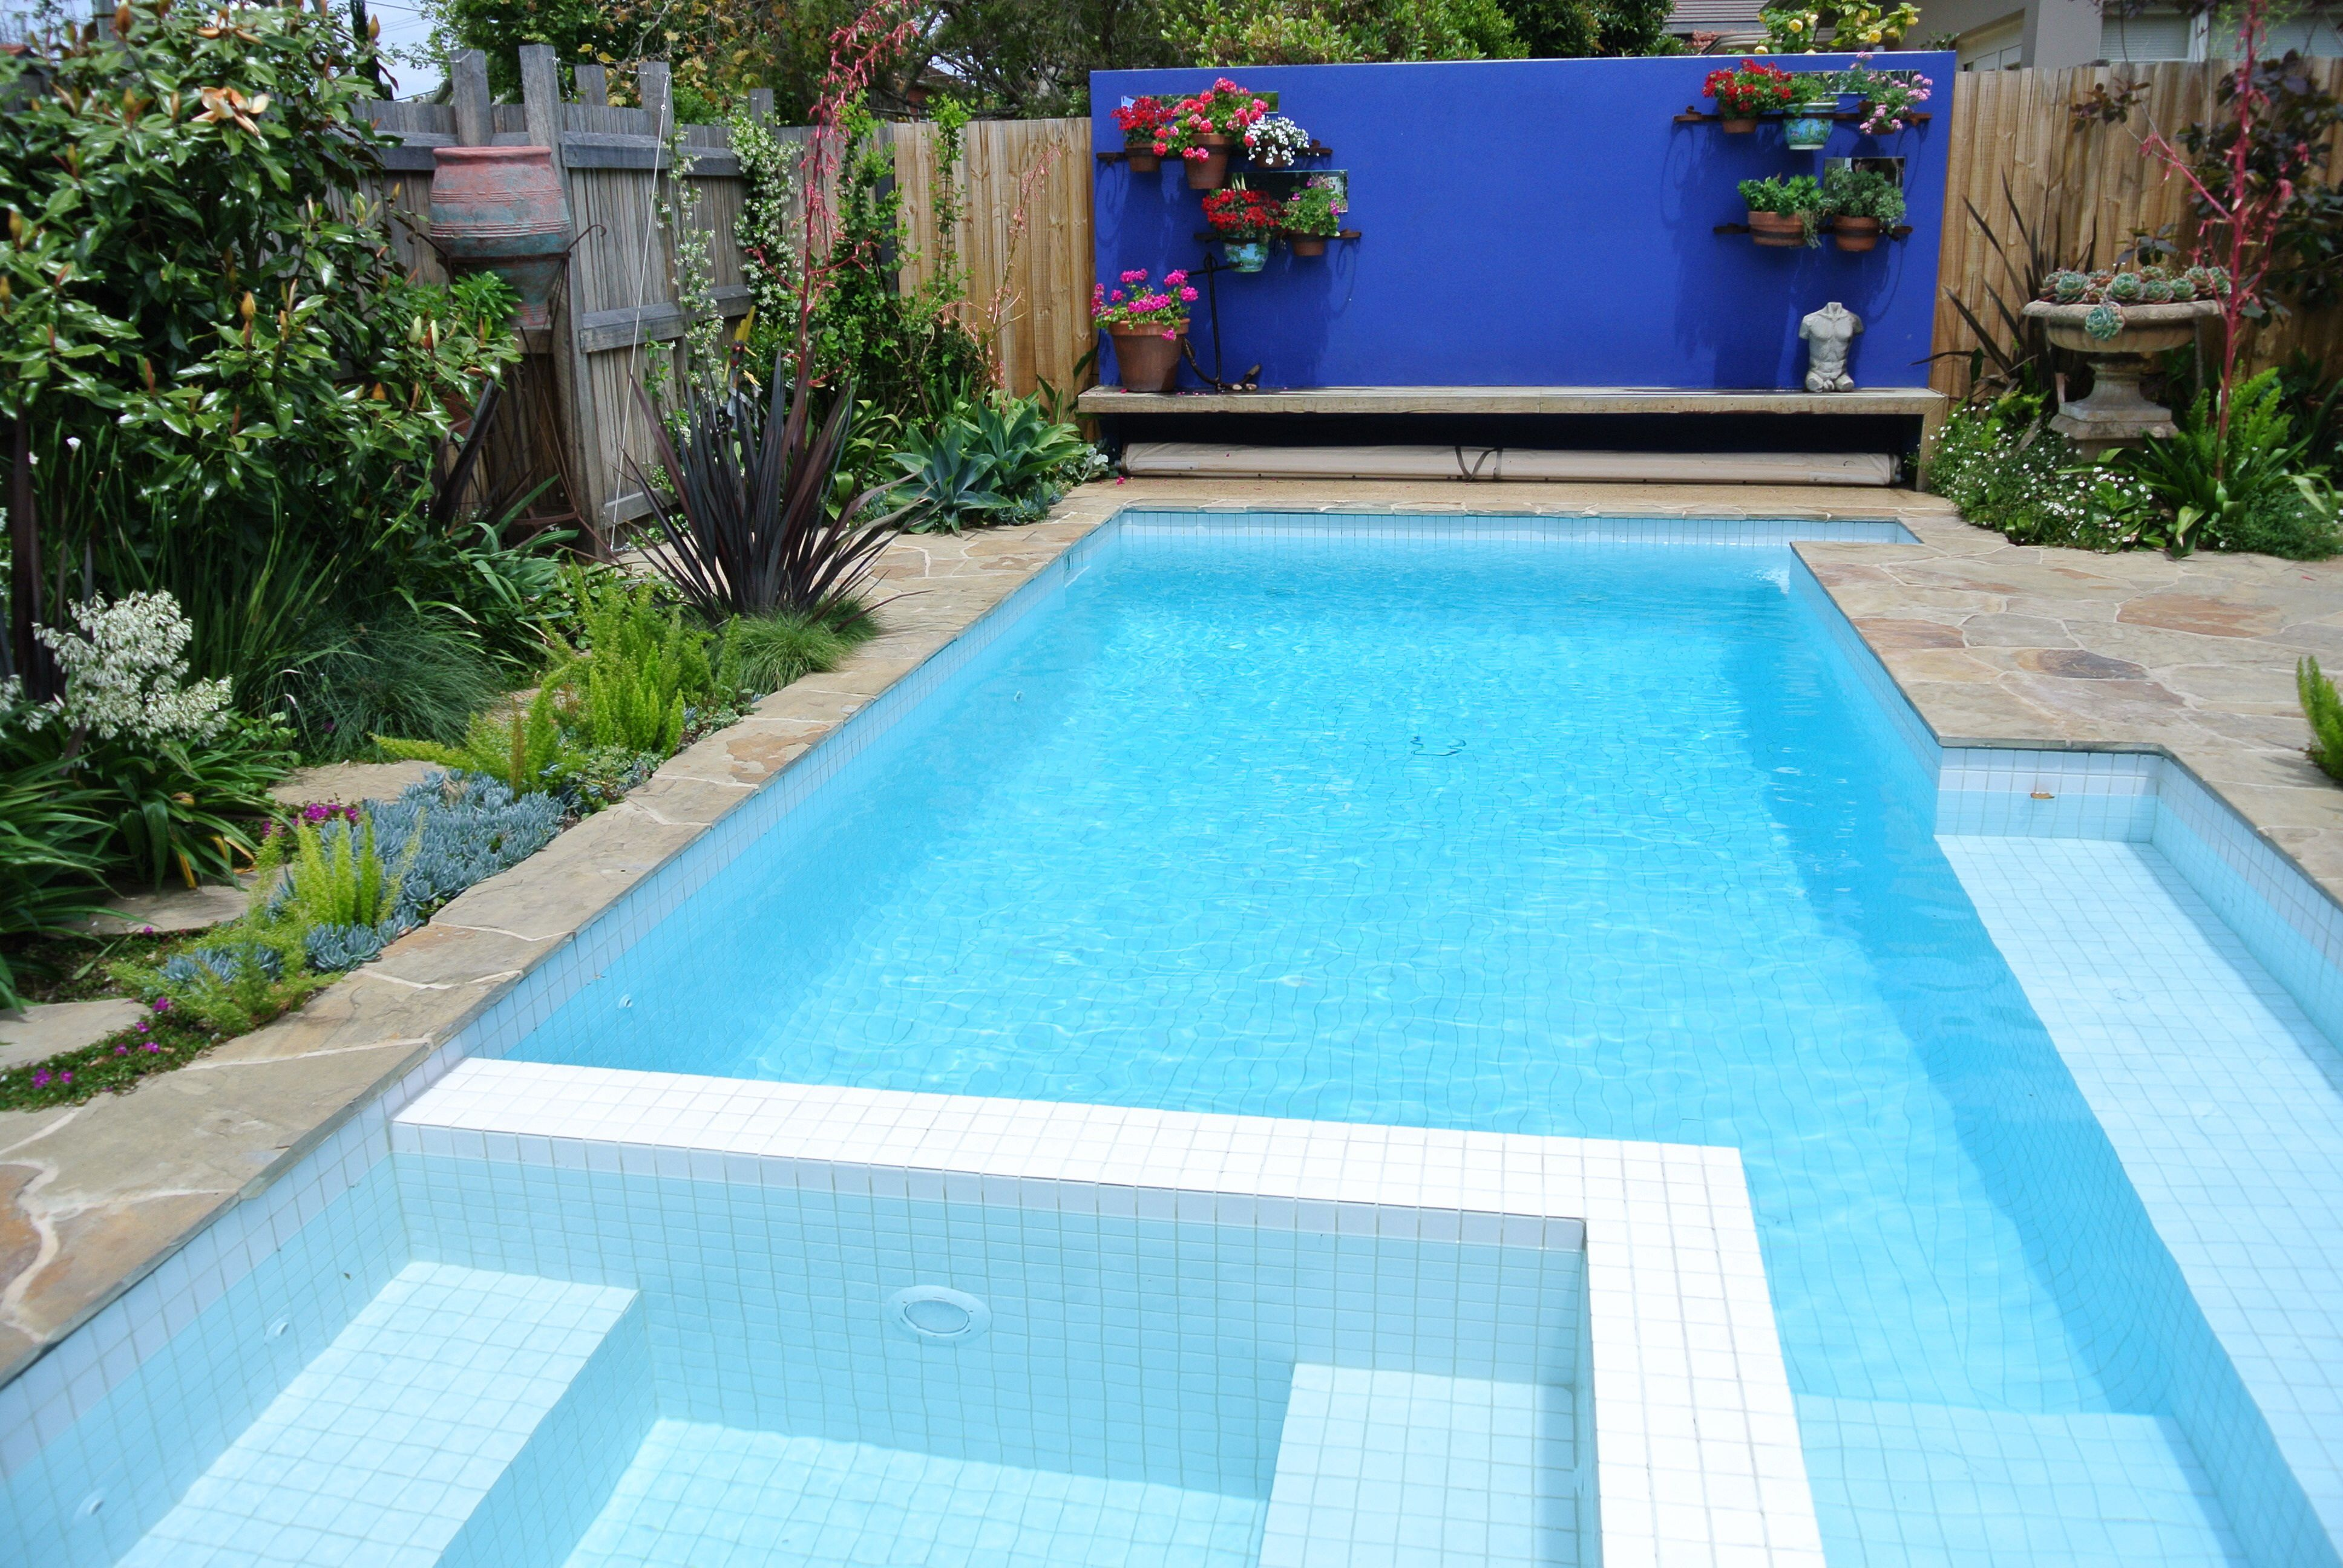 White pool tiles | pools in 2019 | Swimming pool tiles, Glass pool ...